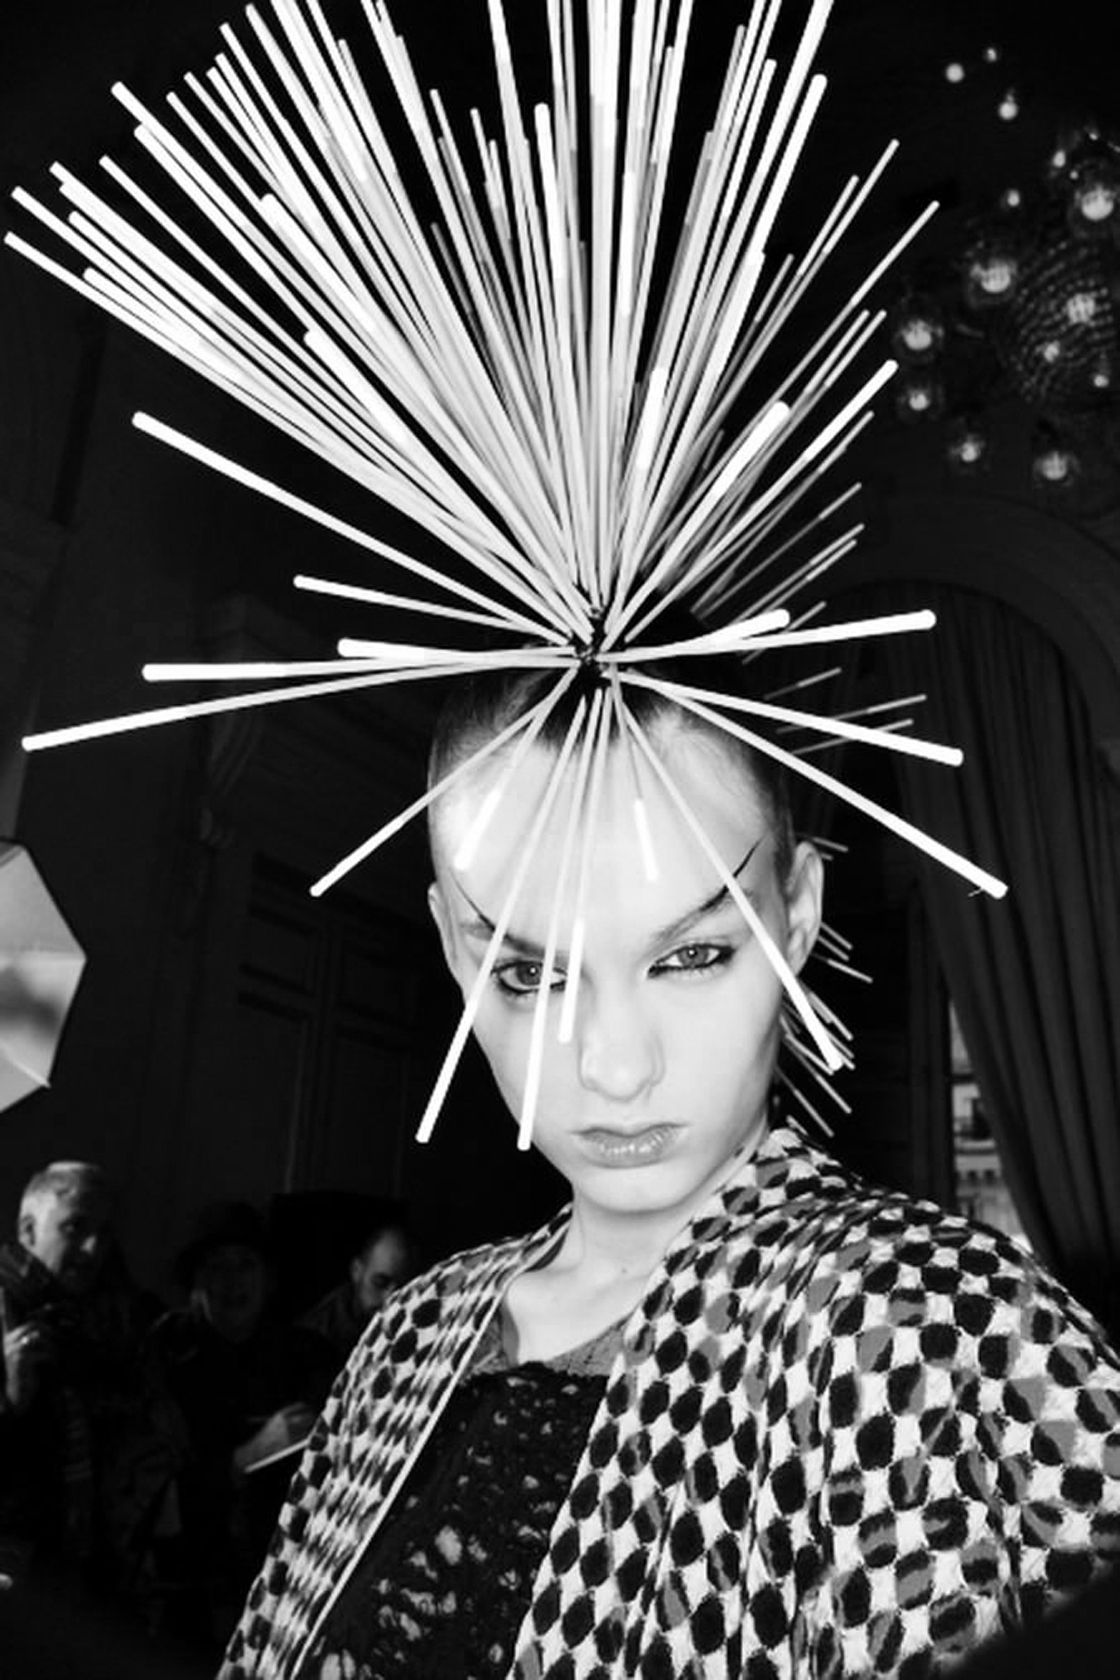 Mohawk spike sonny vandevelde u patternity things pinterest